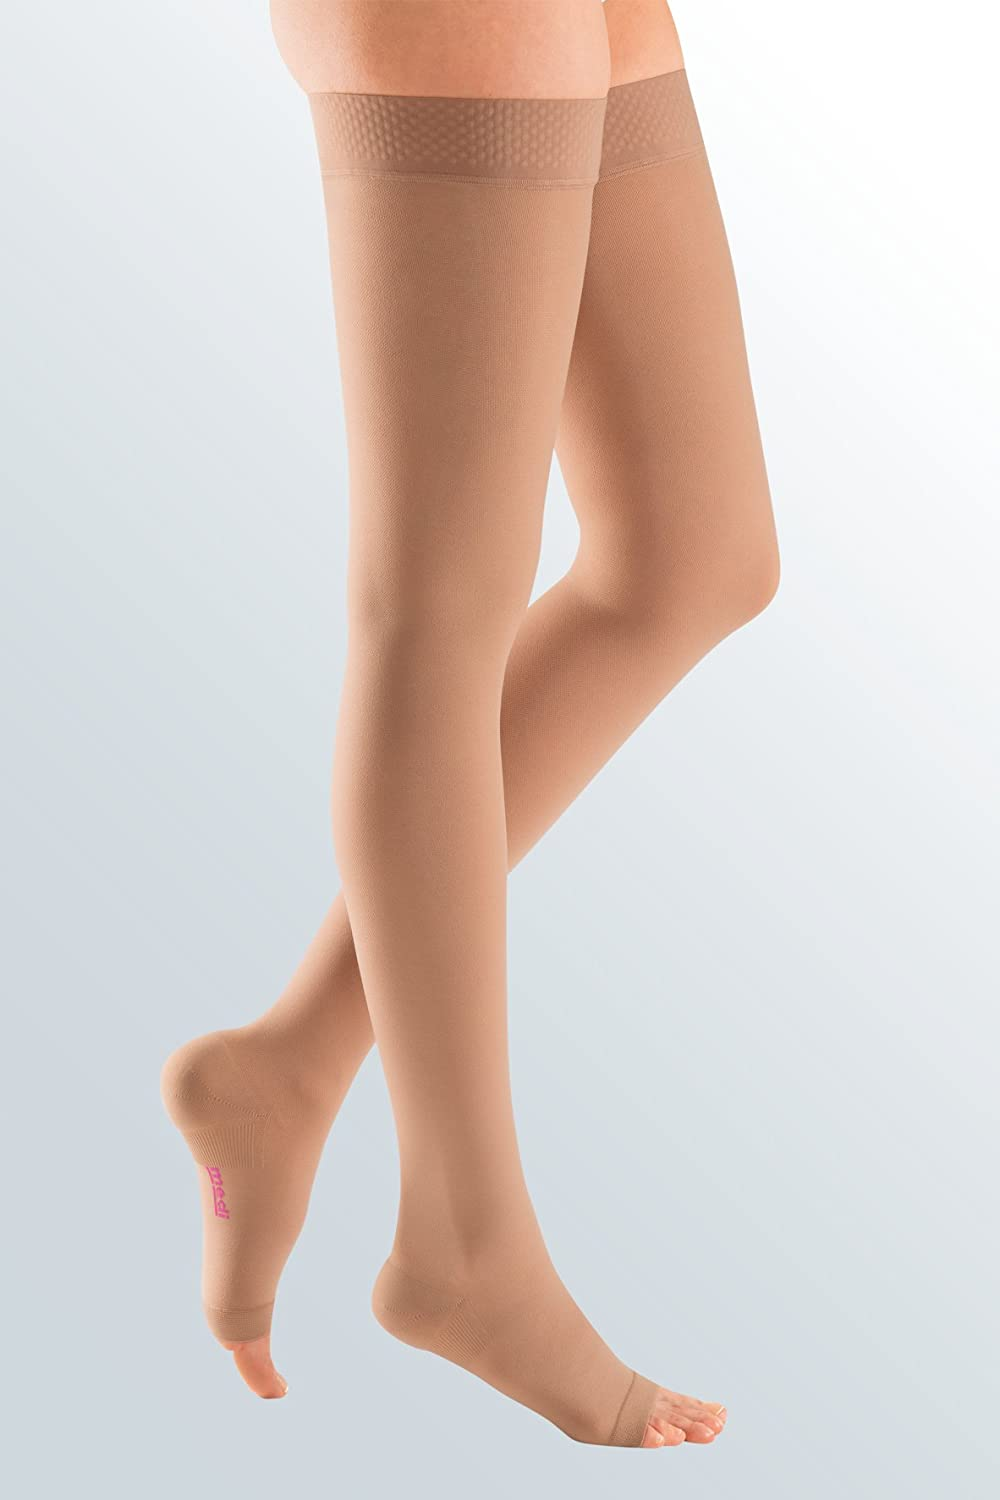 Medi Plus Thigh High 30-40mmHg With Silicone Beaded Band Open Toe, IV, BGE by Medi B003AKKMXW